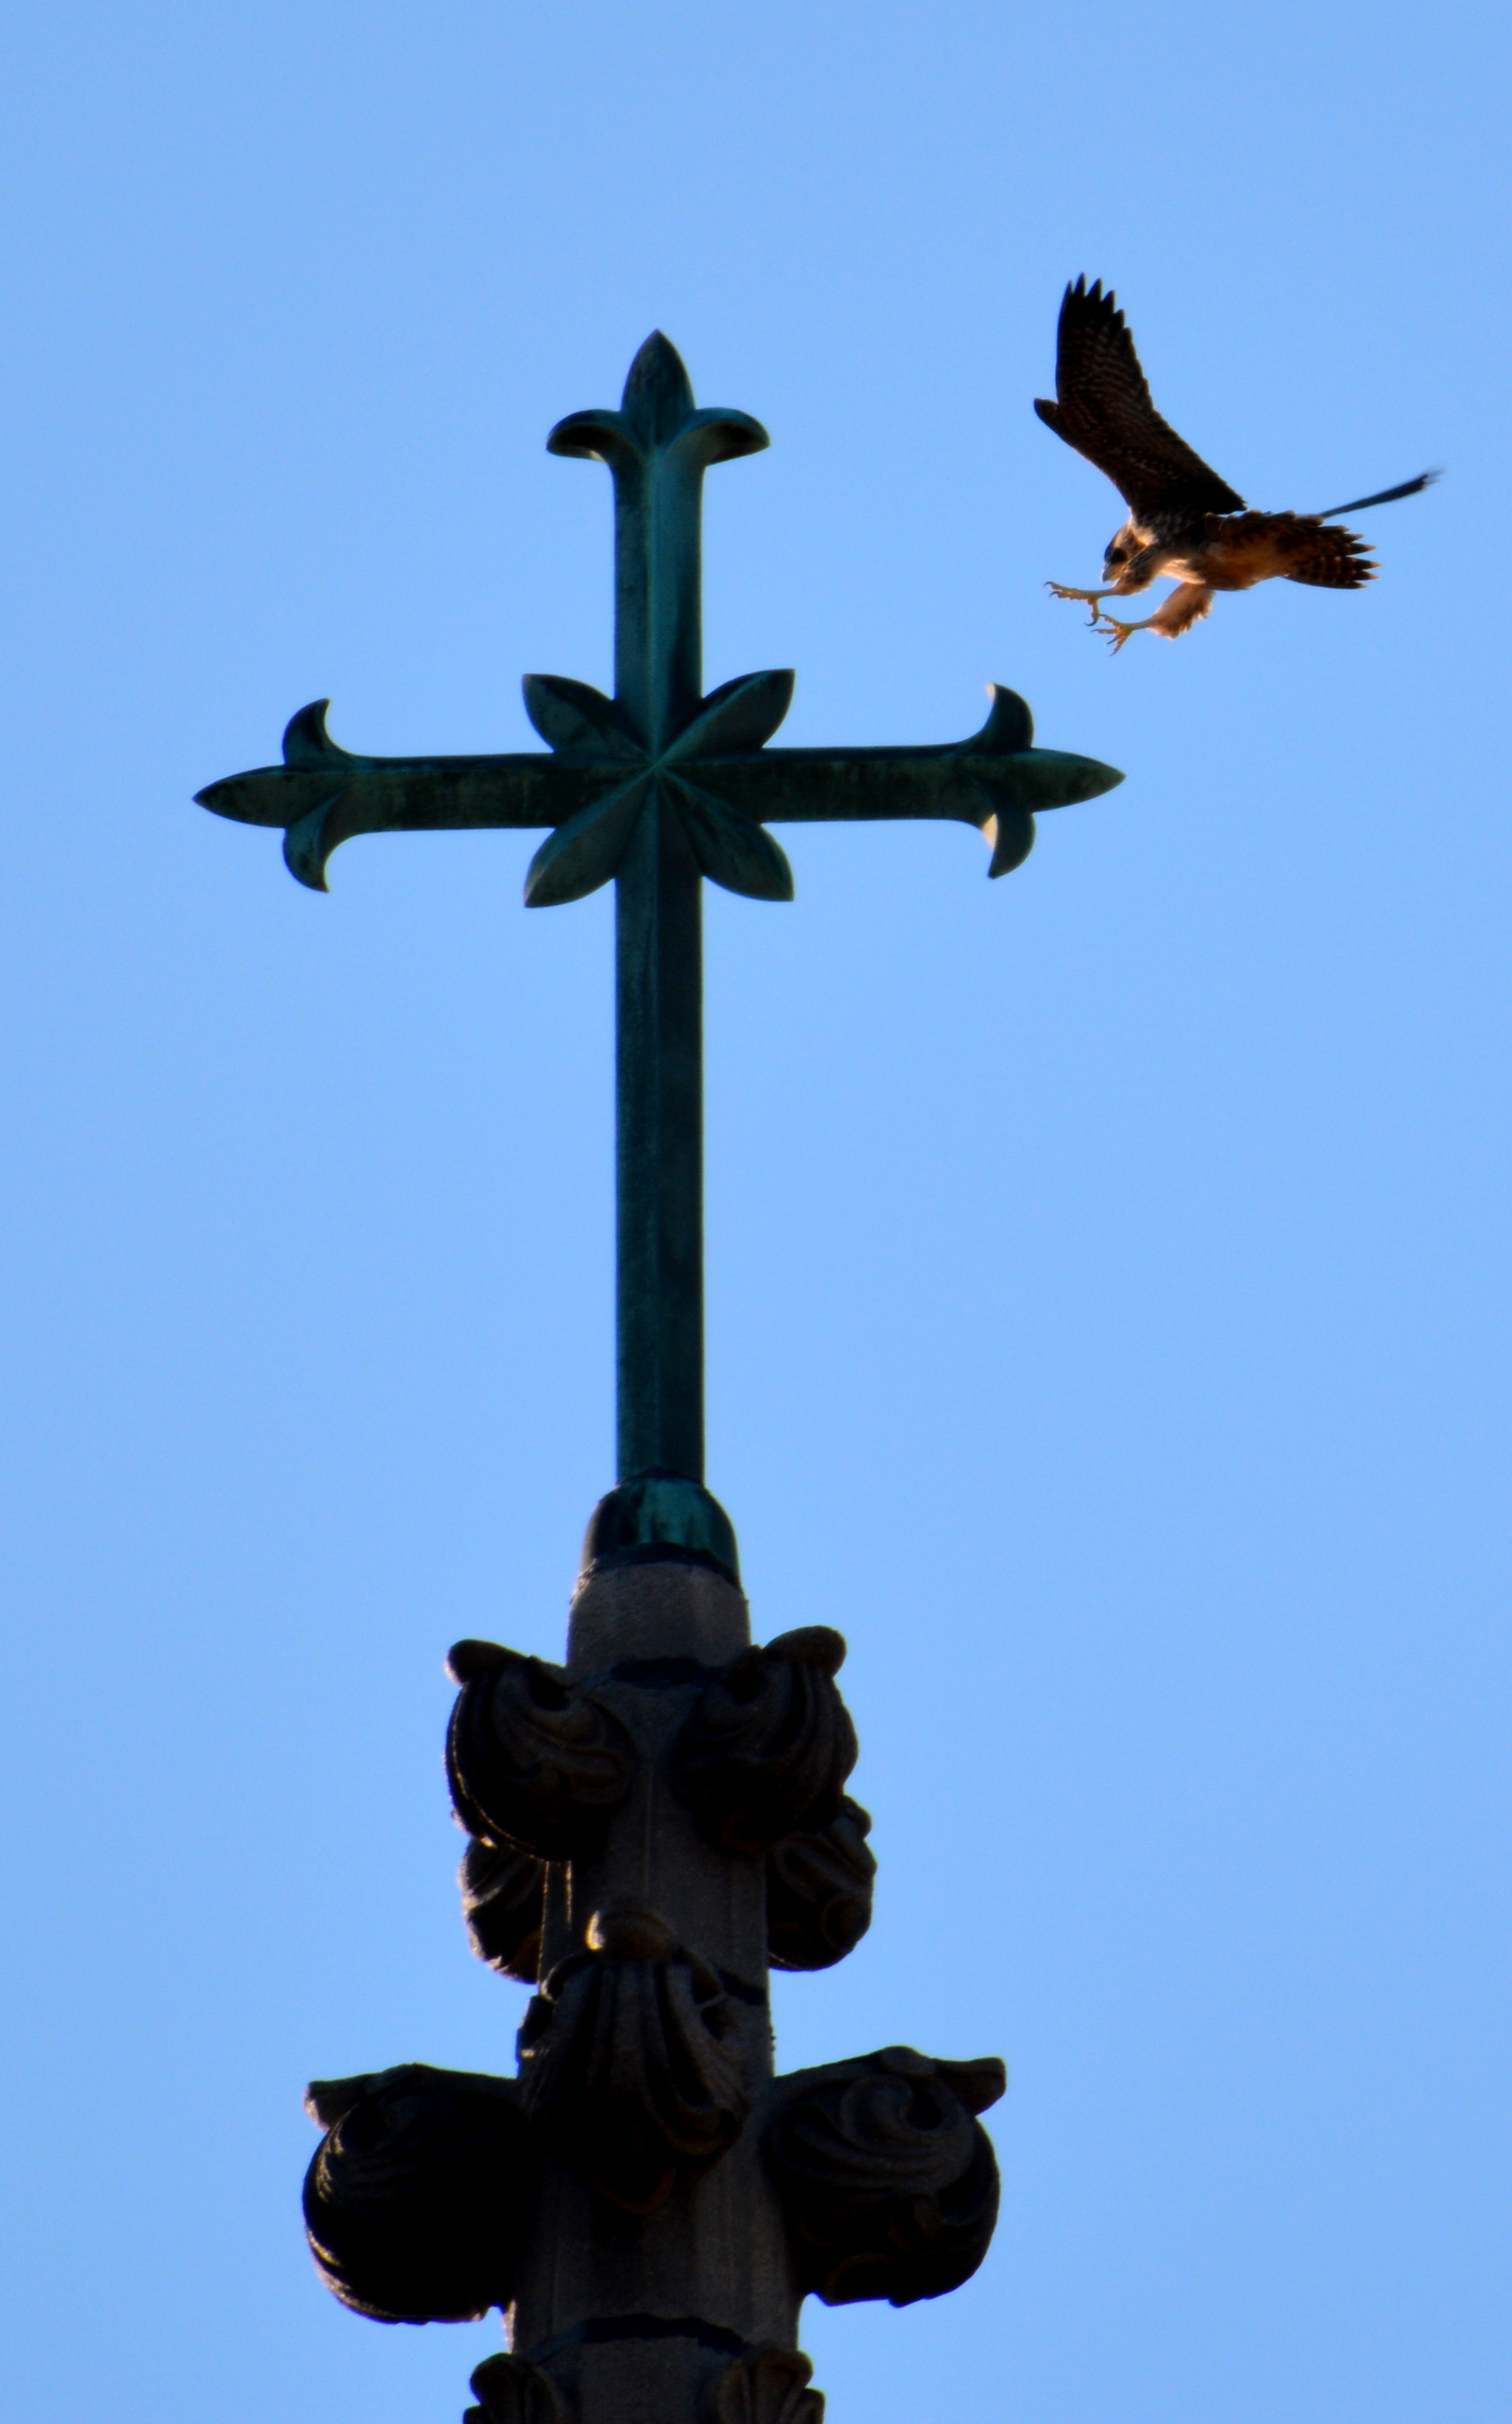 Coming down for a landing on the cross at the very top of the steeple